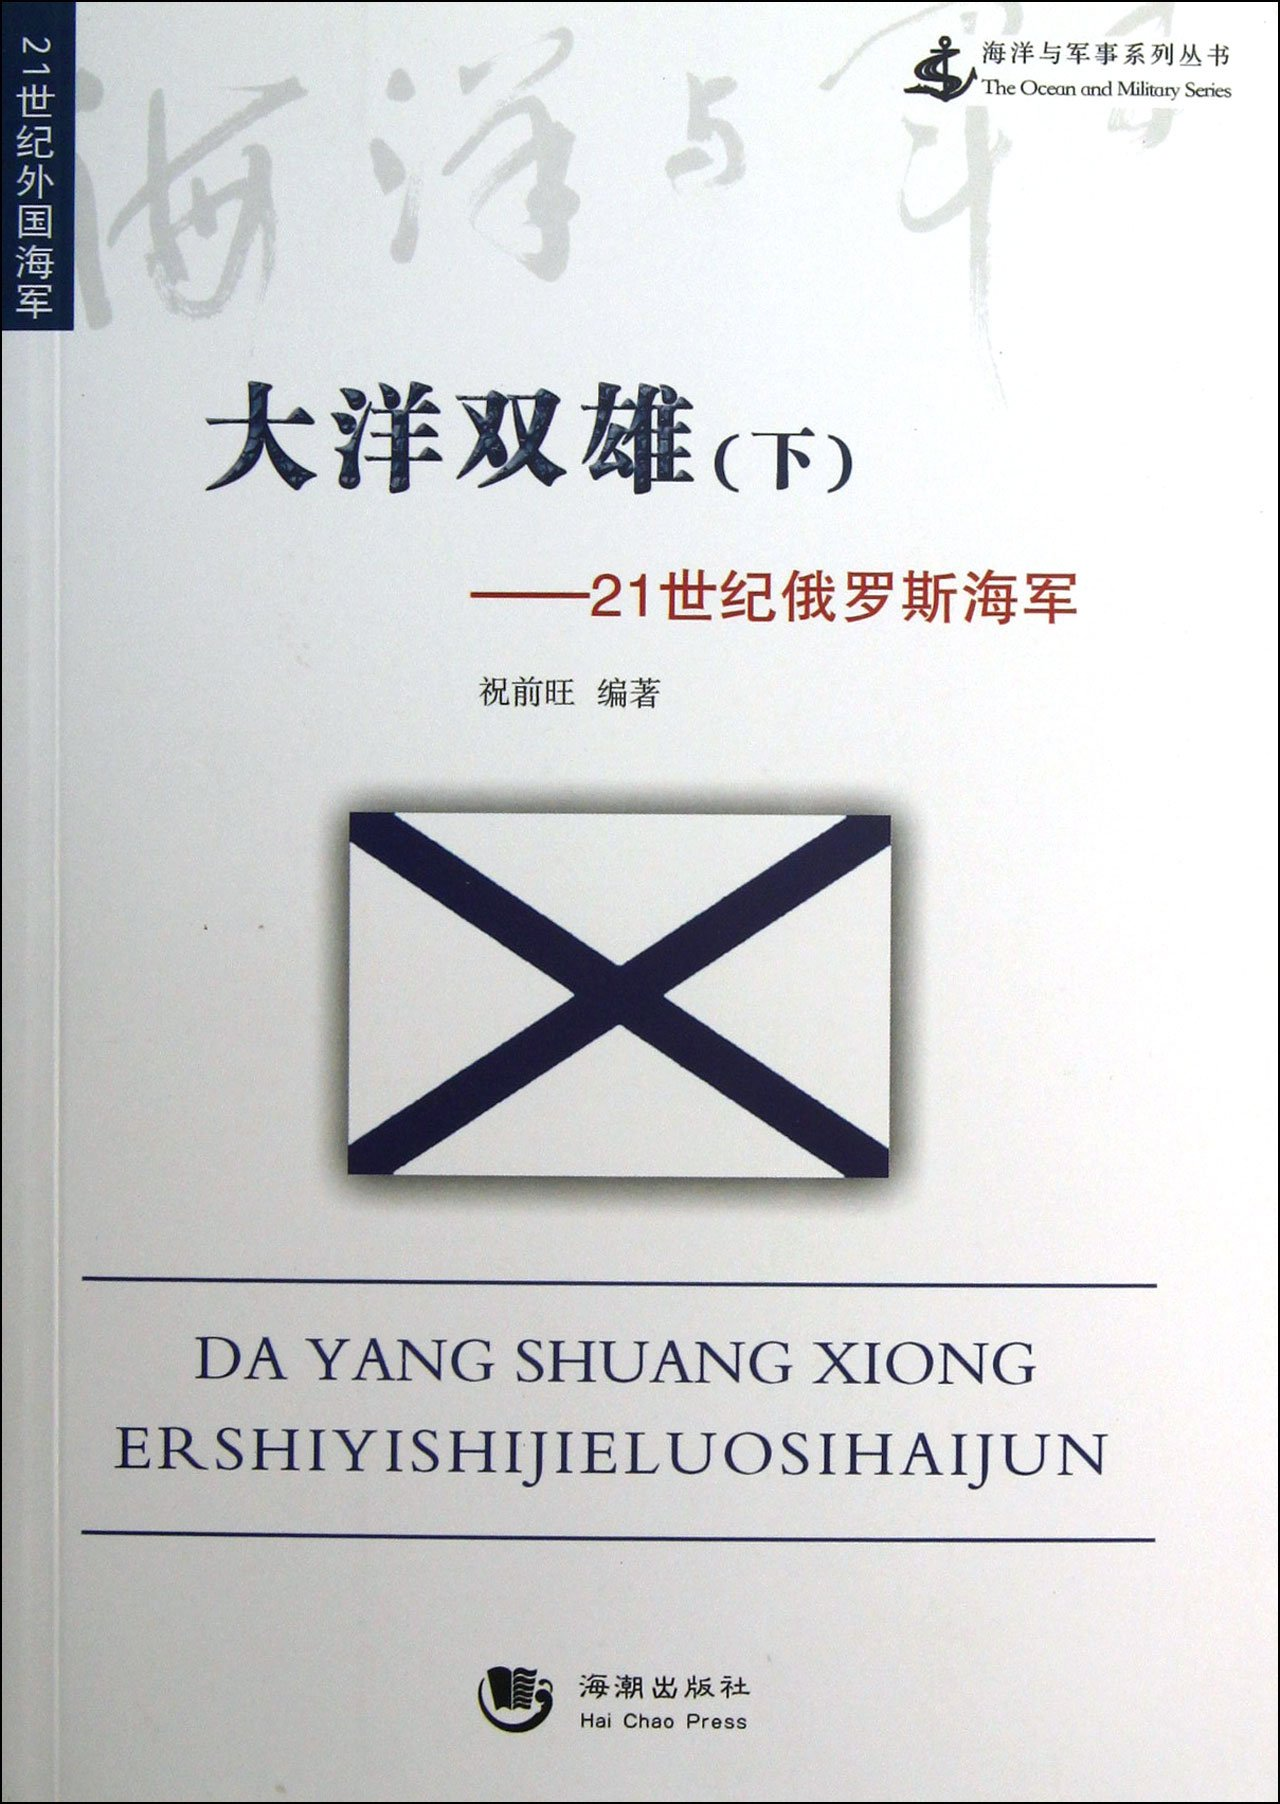 Twin Heroes in Ocean (II Russian Navy in the 21st Century) (Chinese Edition) pdf epub